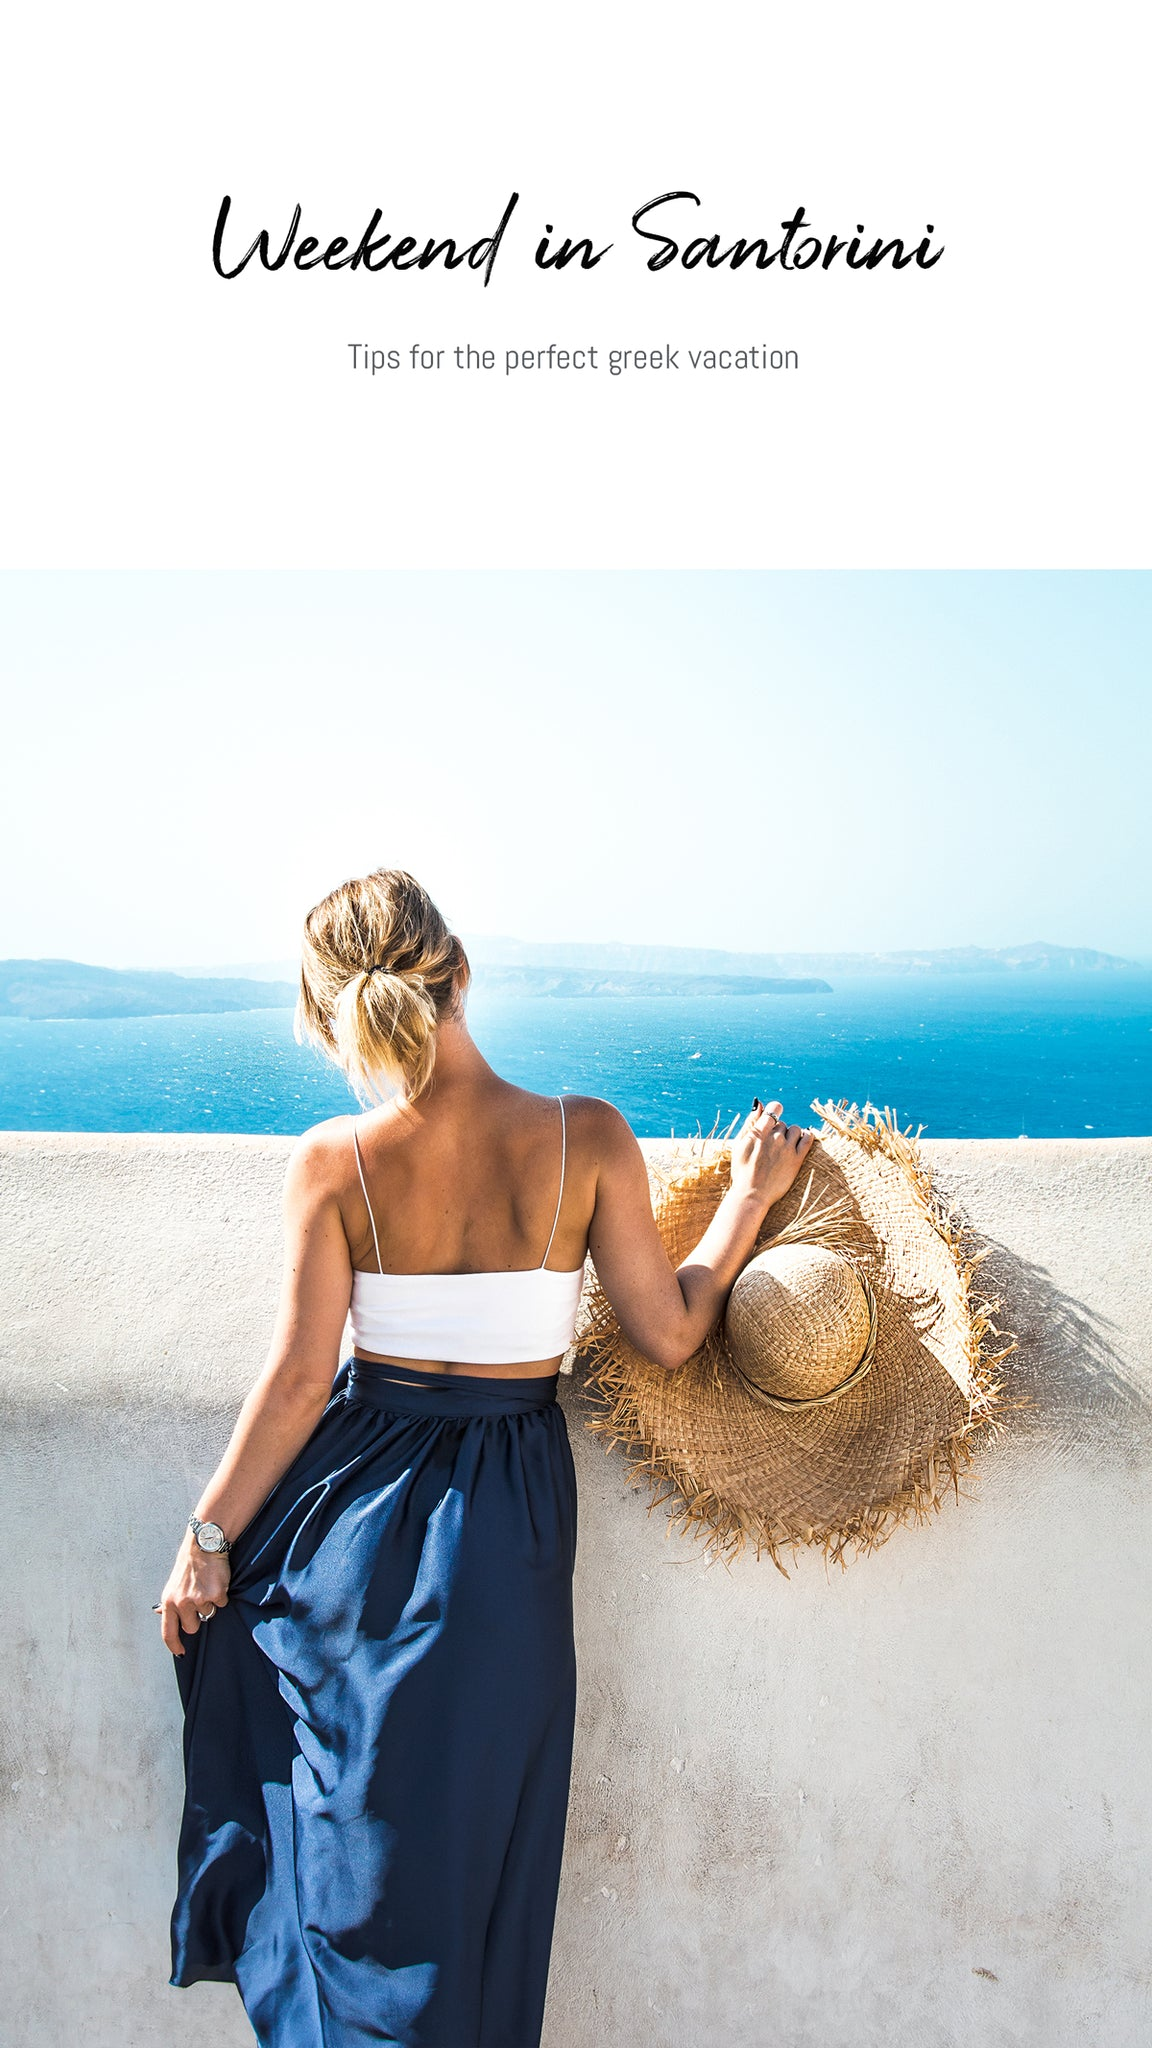 Tips for the perfect weekend in Santorini